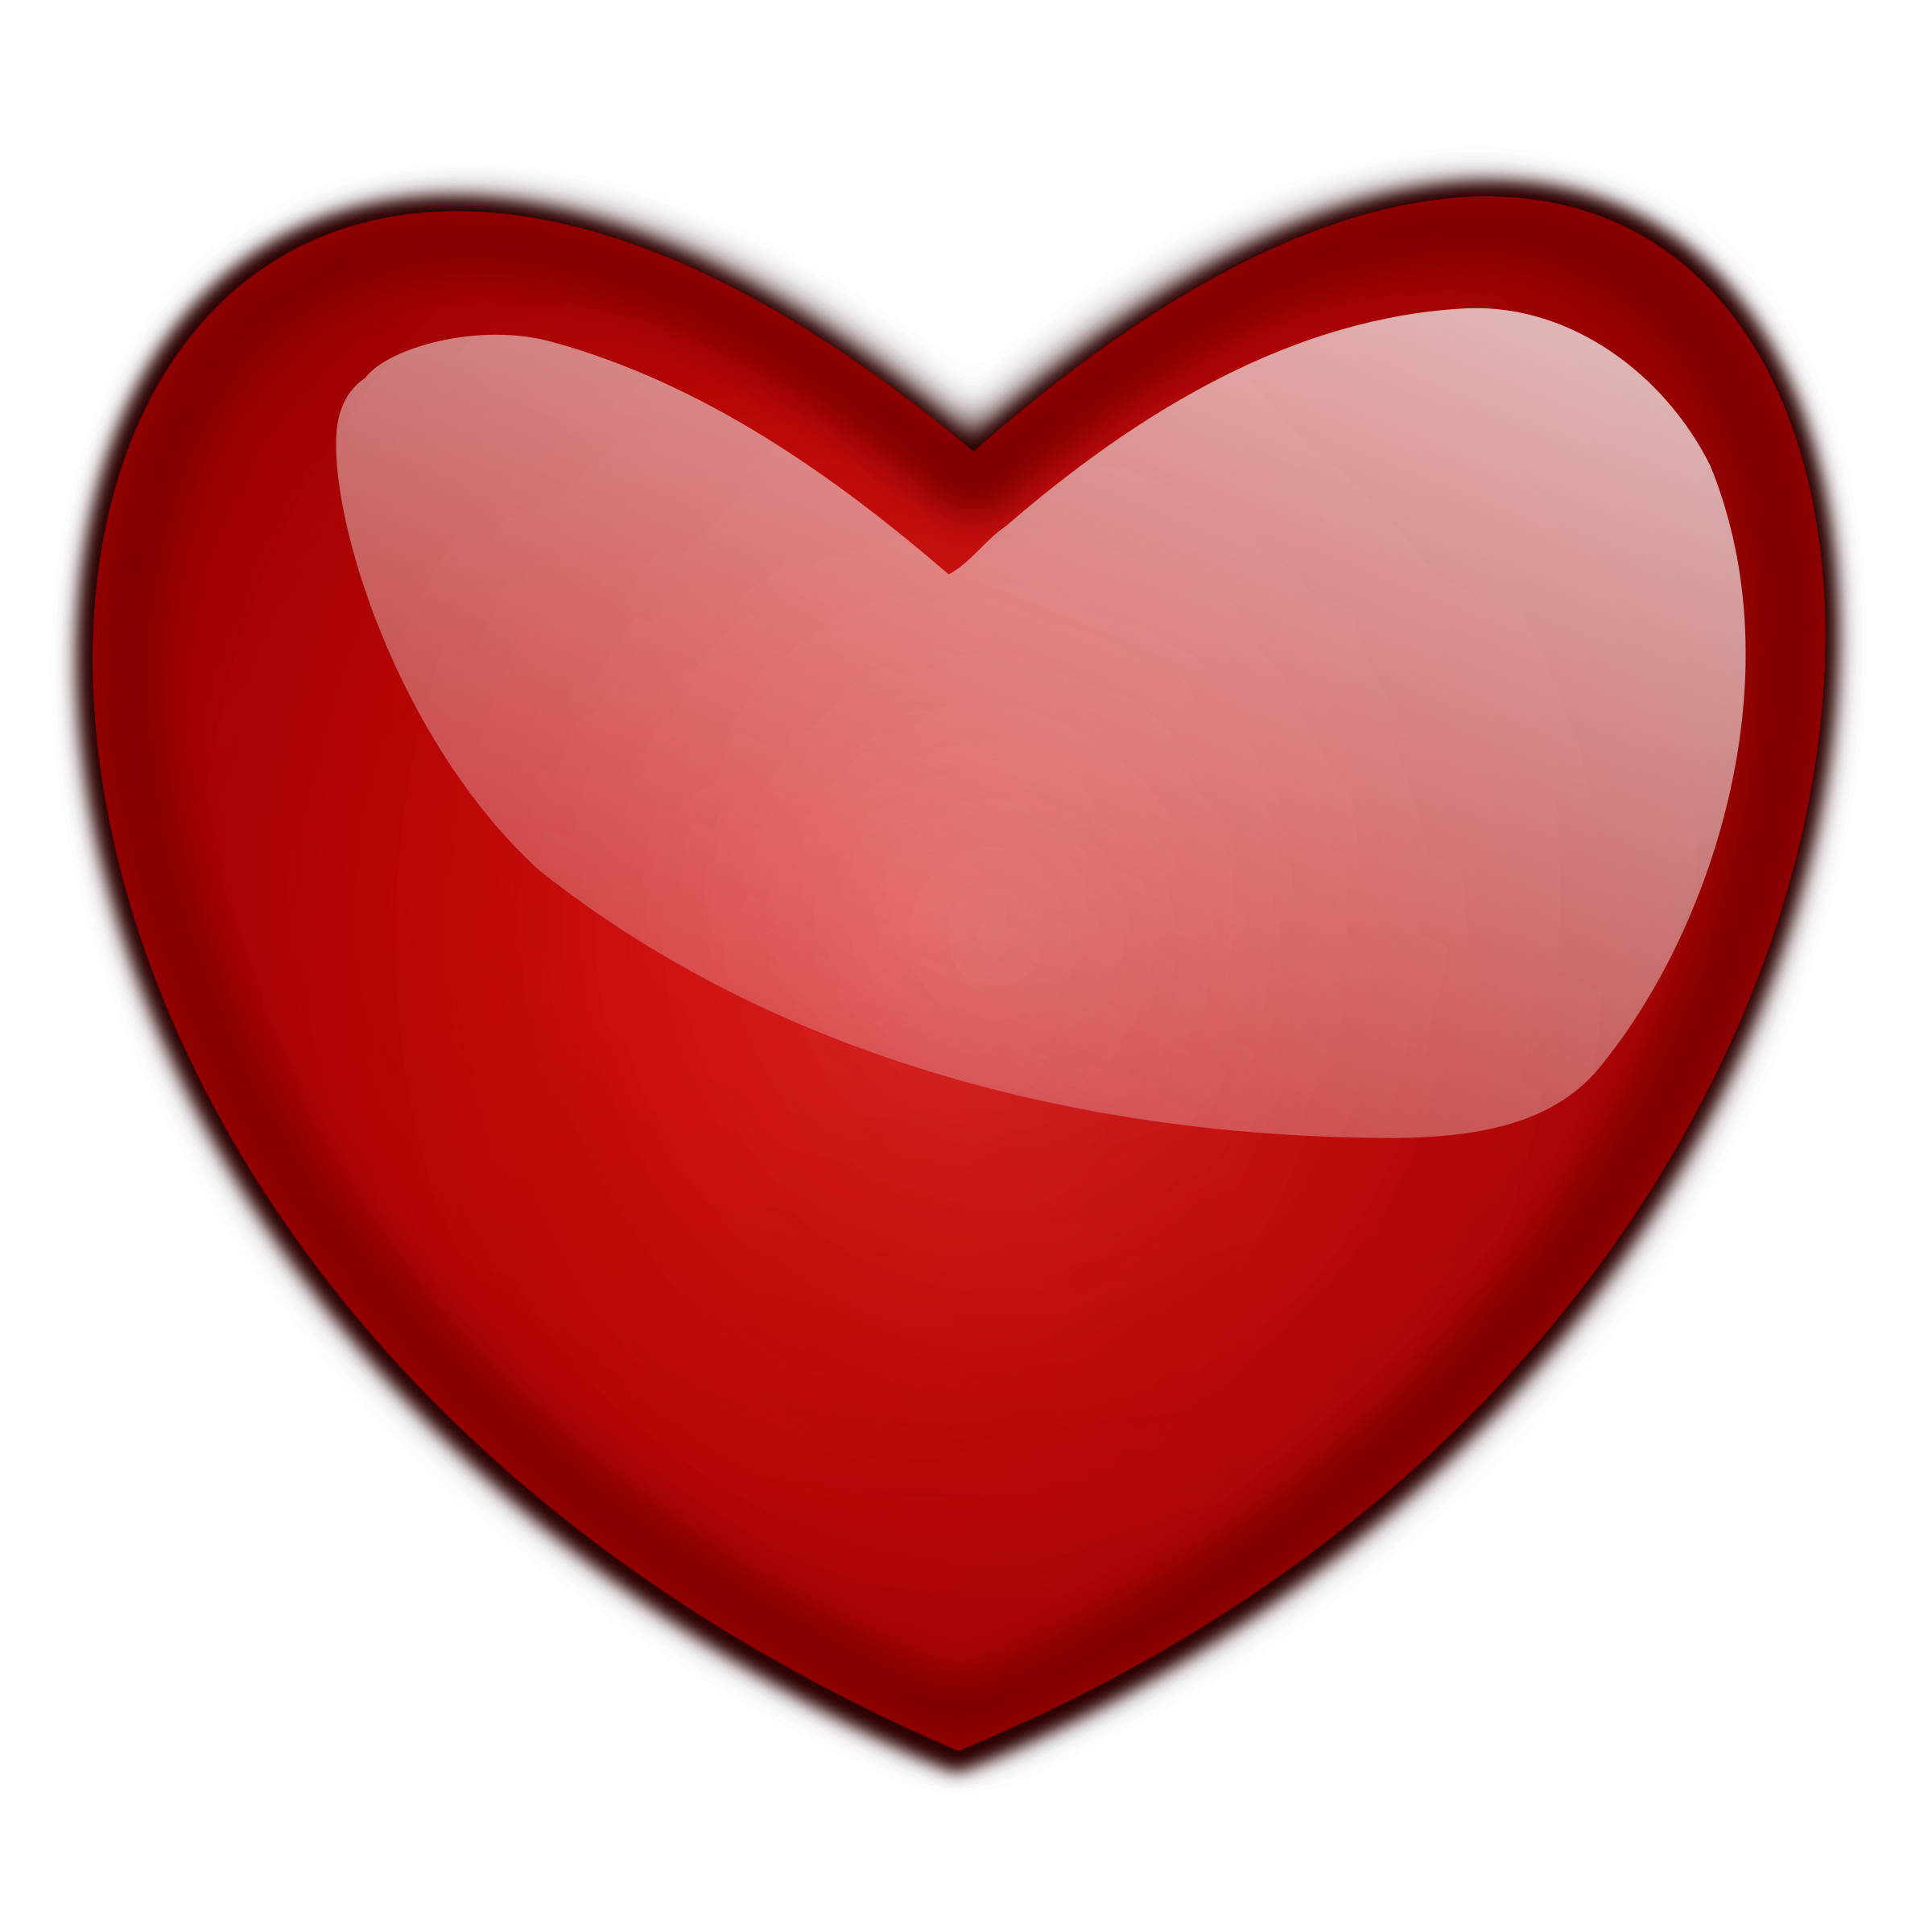 Number 1 clipart heart, Number 1 heart Transparent FREE for.